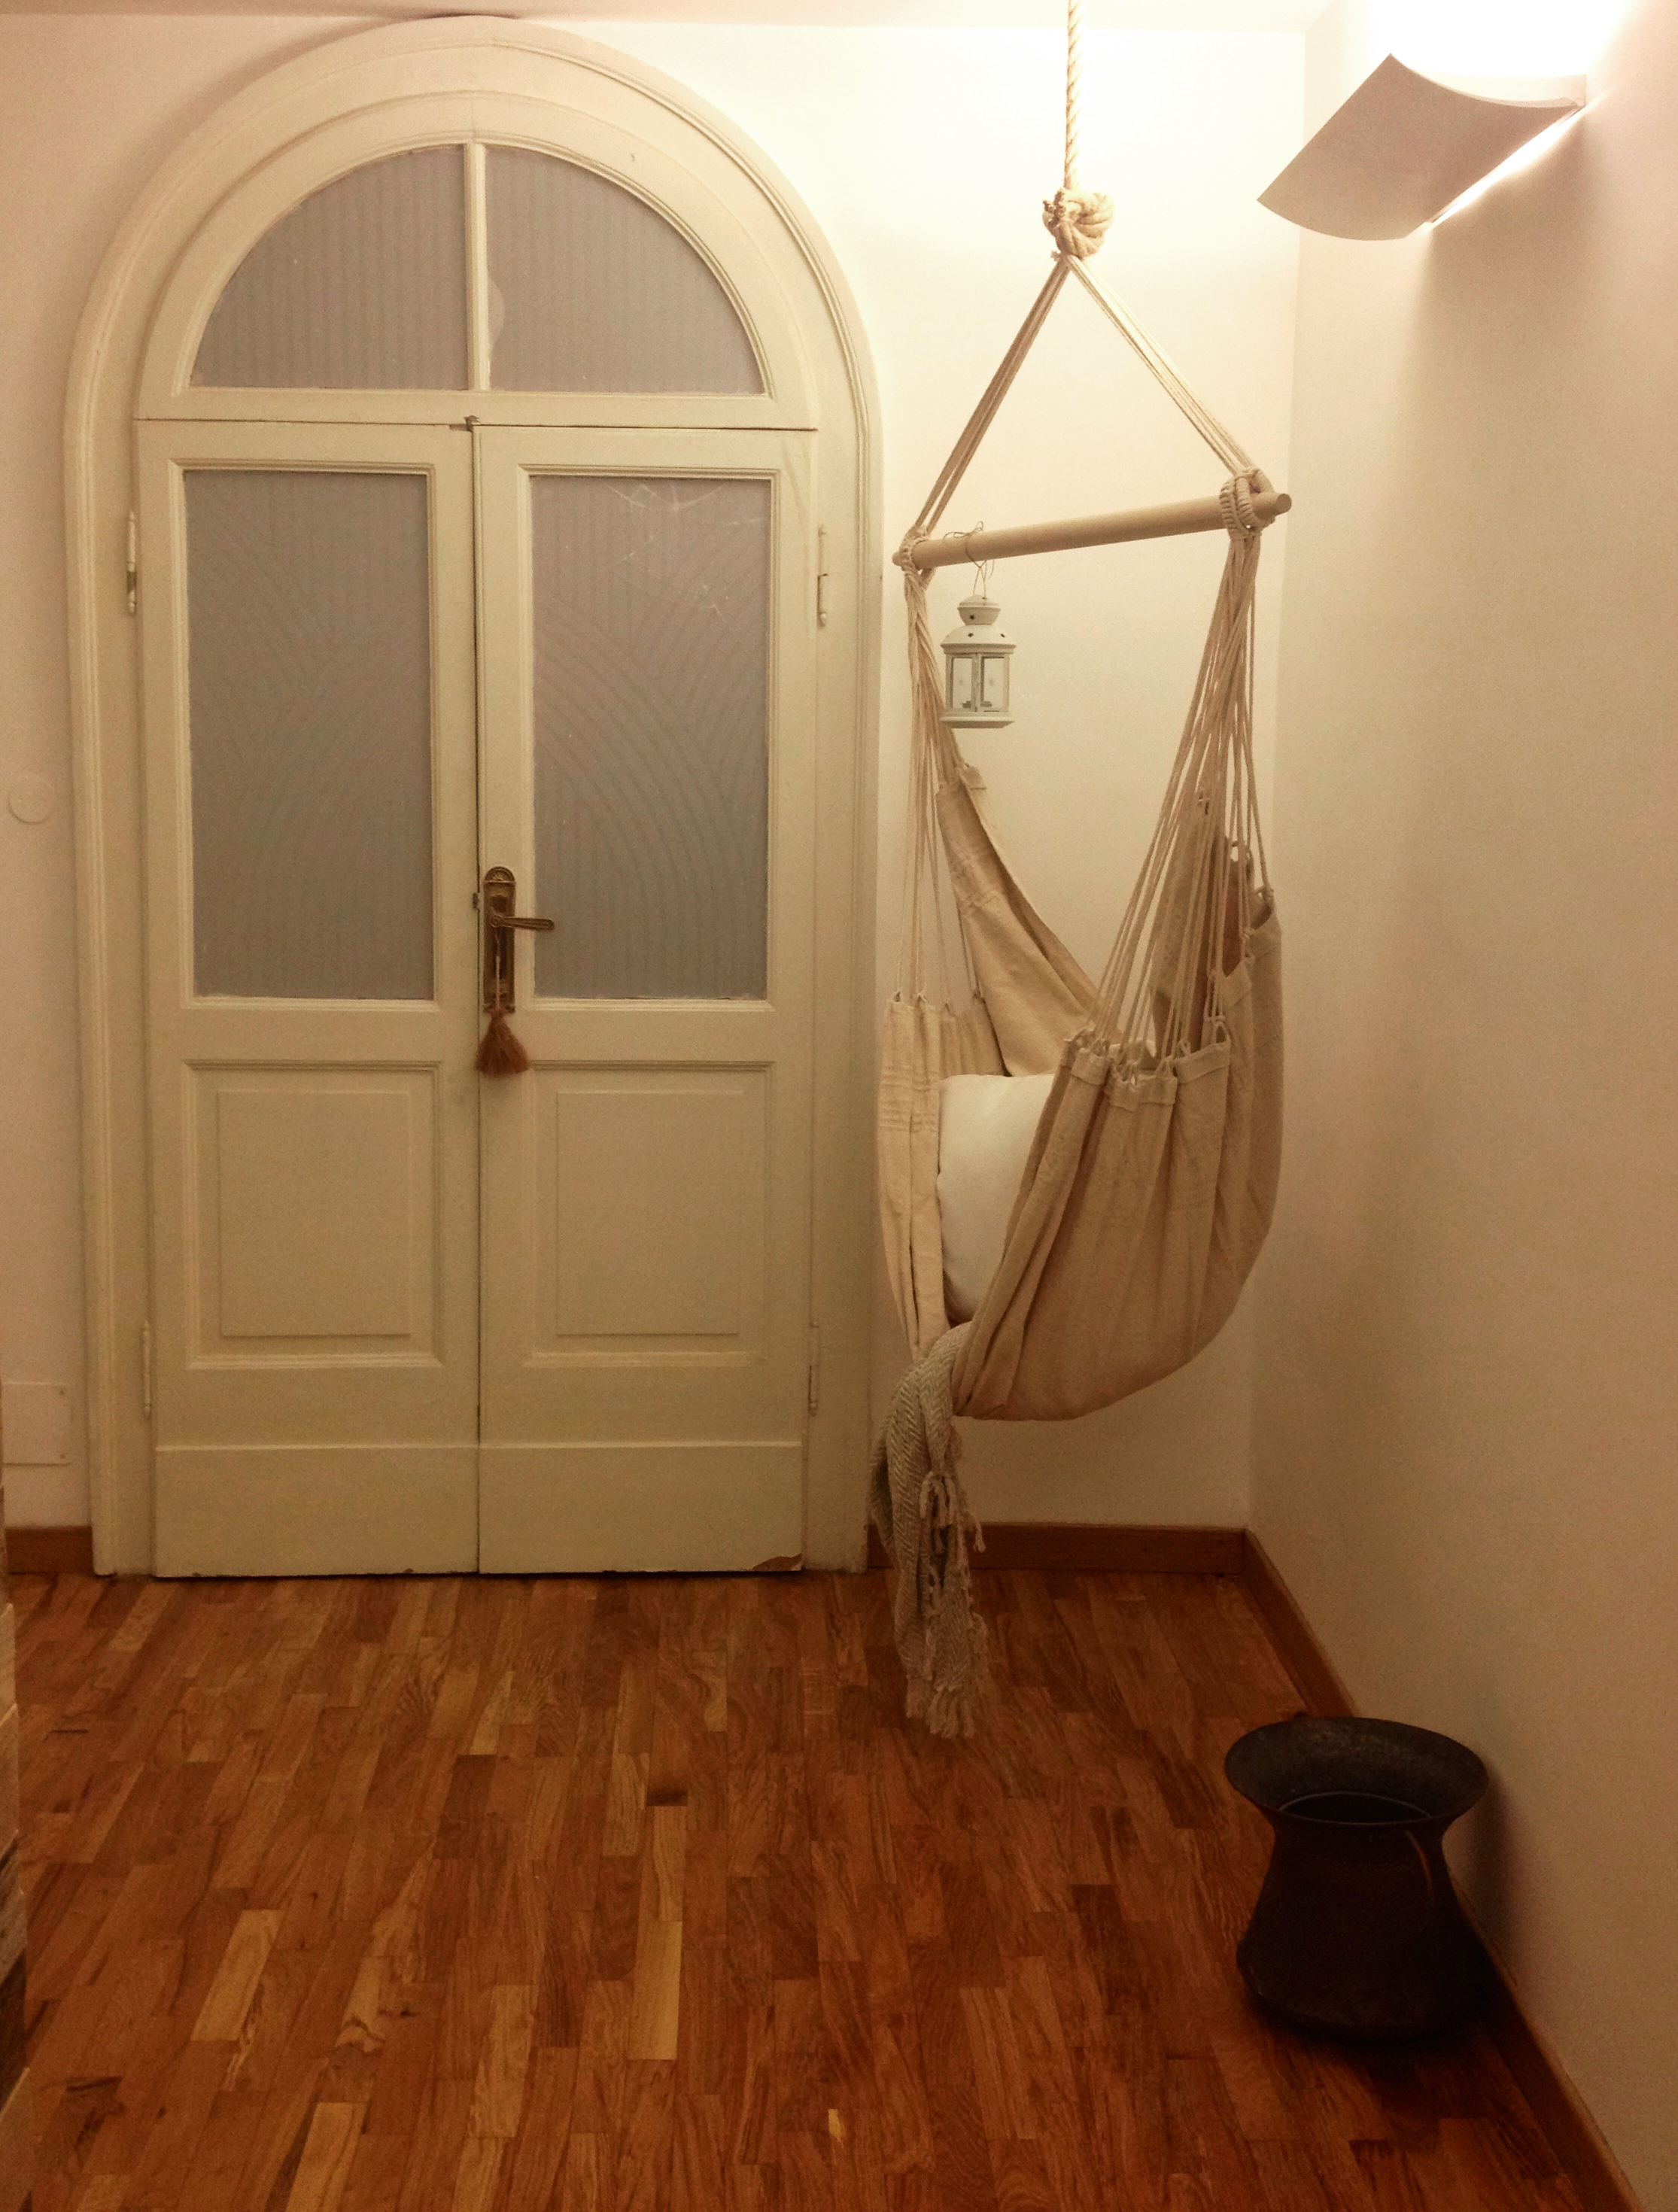 Zem Yoga Roma - yoga studio in Rome